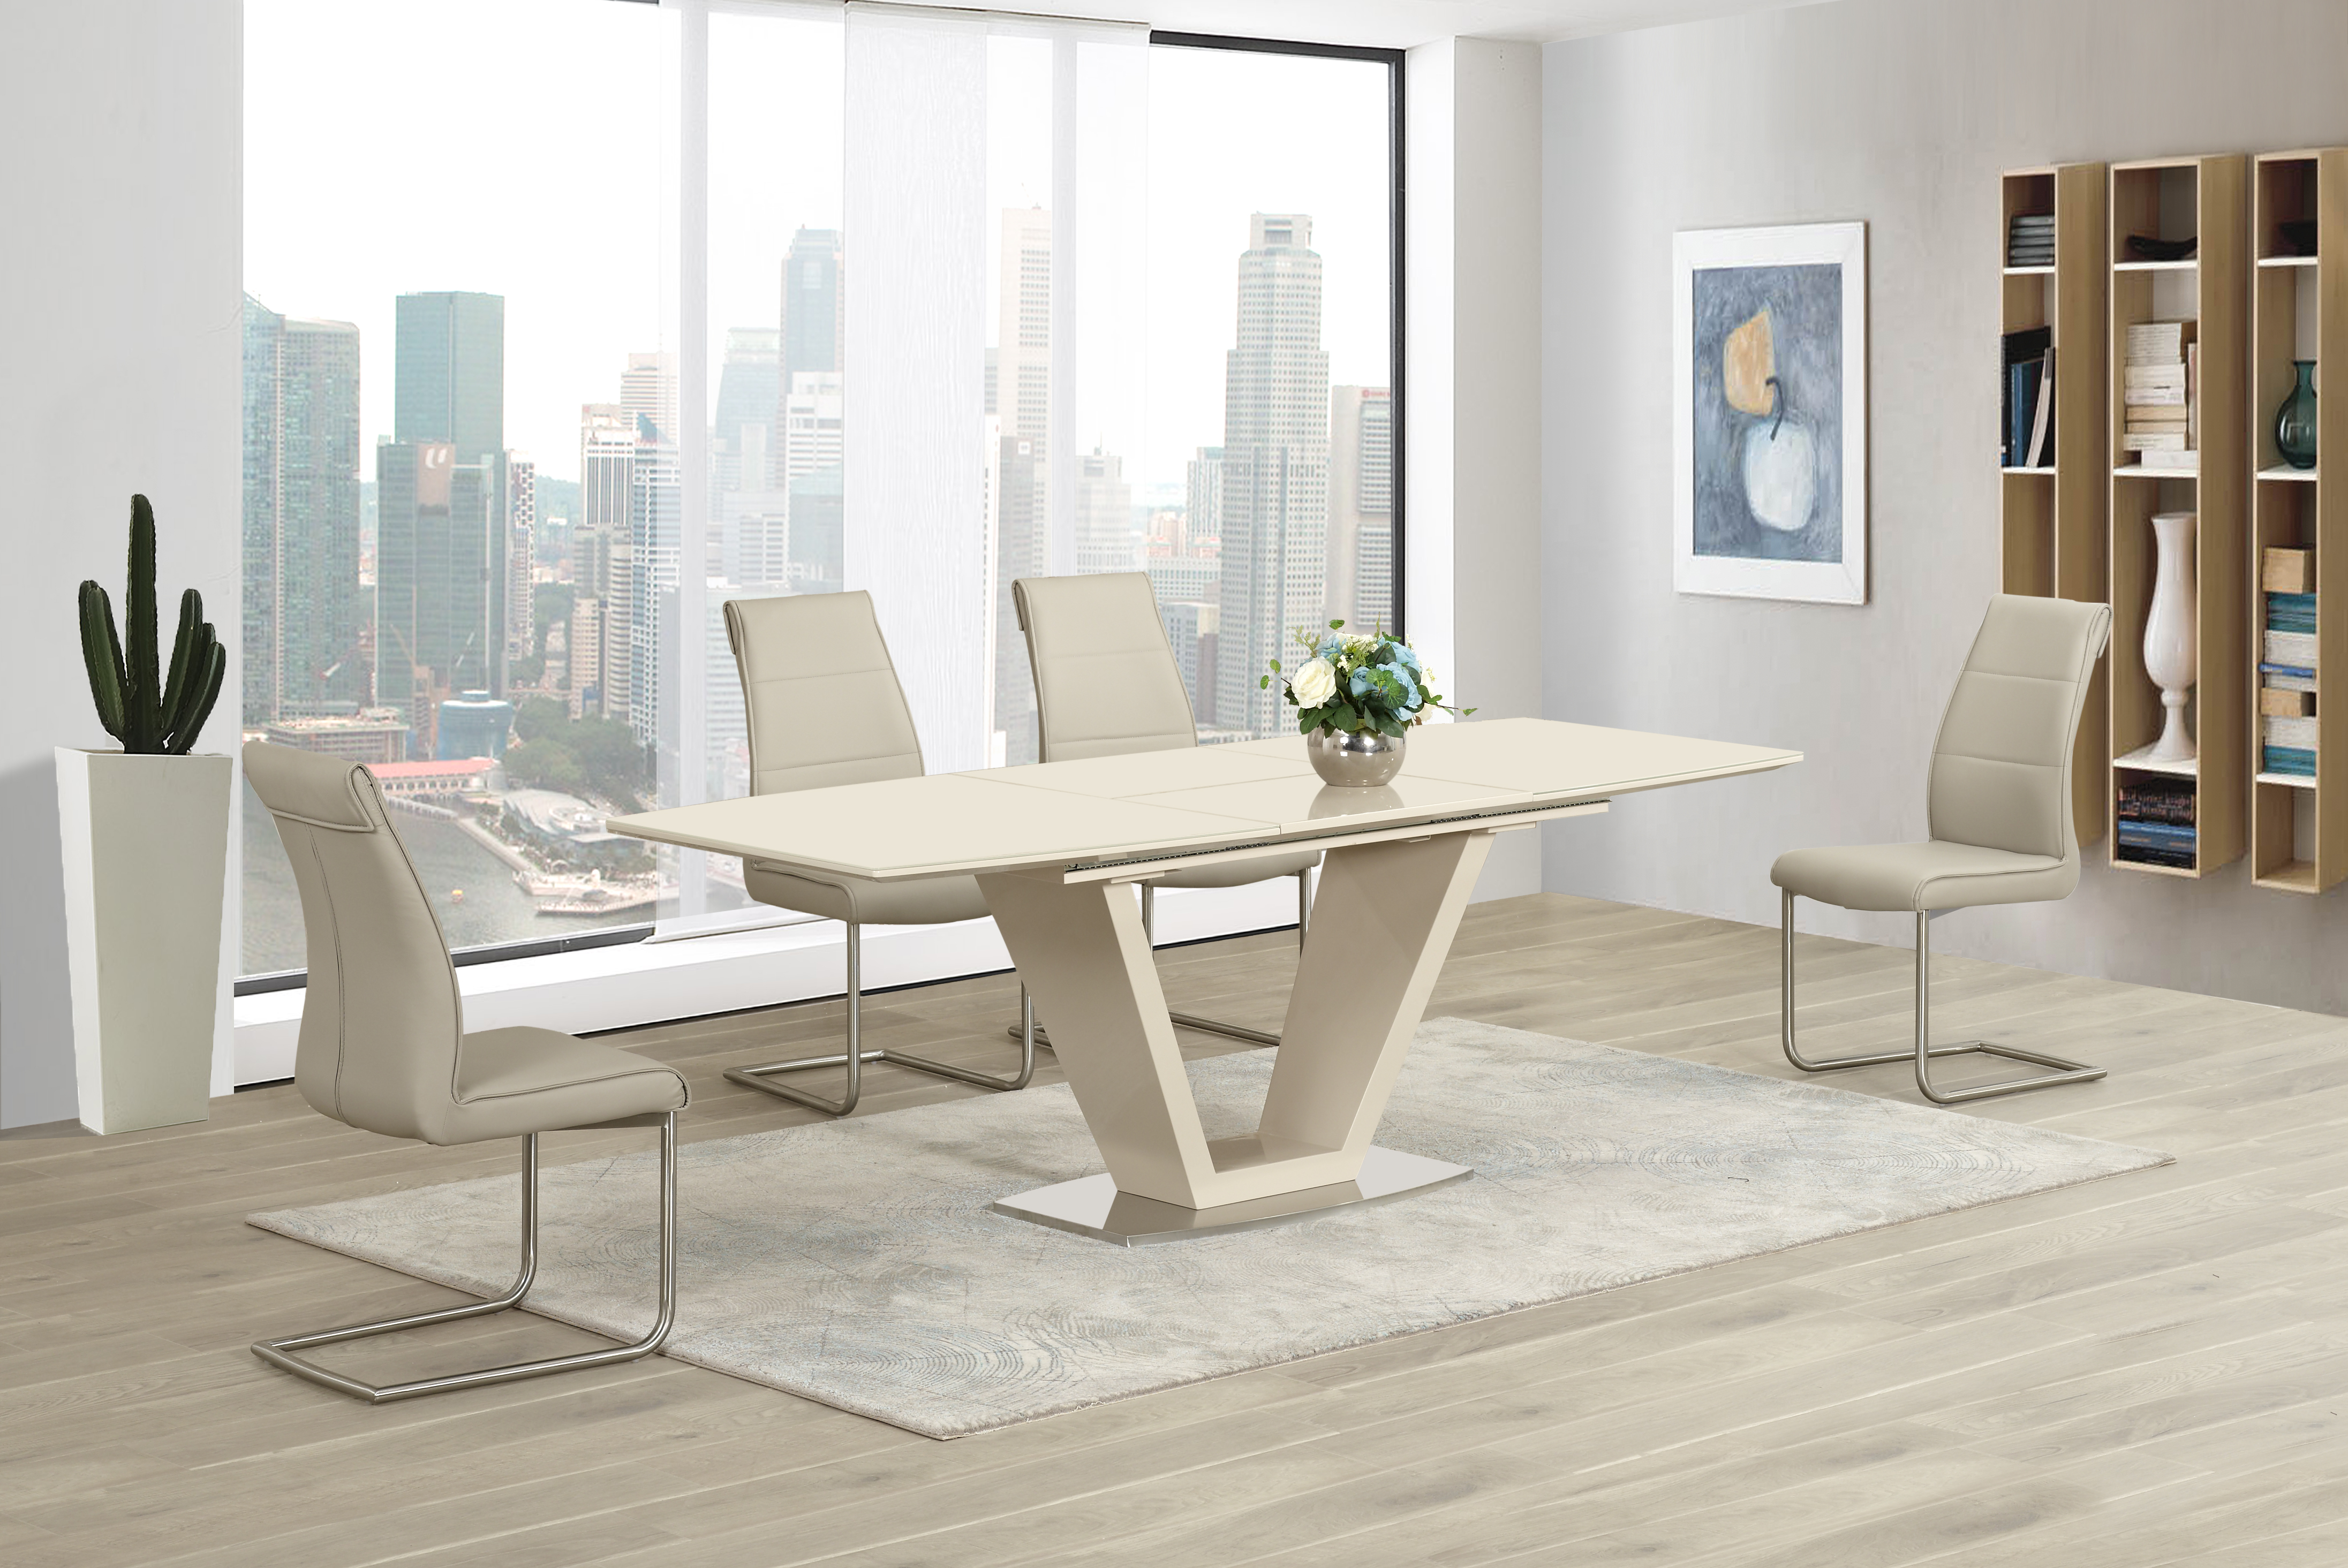 Lorgato Cream EXT Table DTX-2135 & Zayno Taupe Chair CH-6652